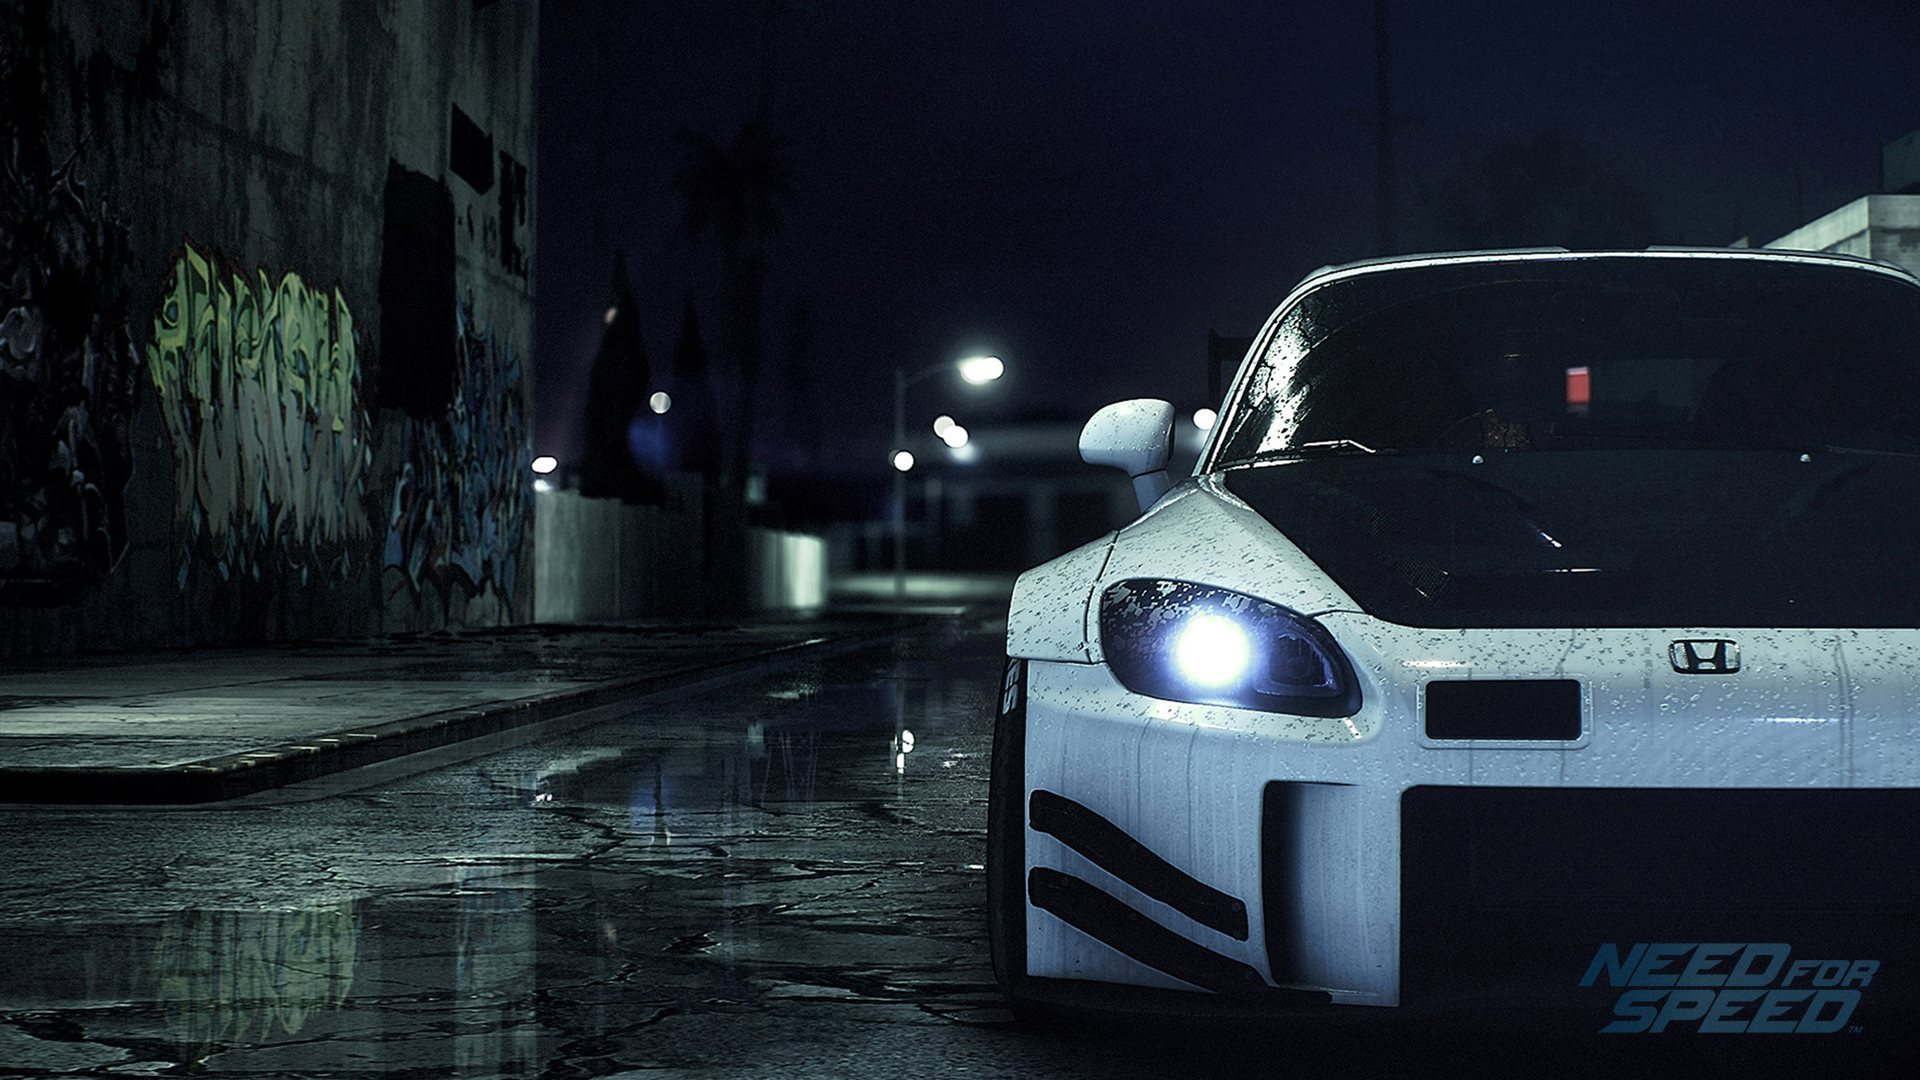 Need for Speed HD Wallpaper Background 25845 Wallur 1920x1080